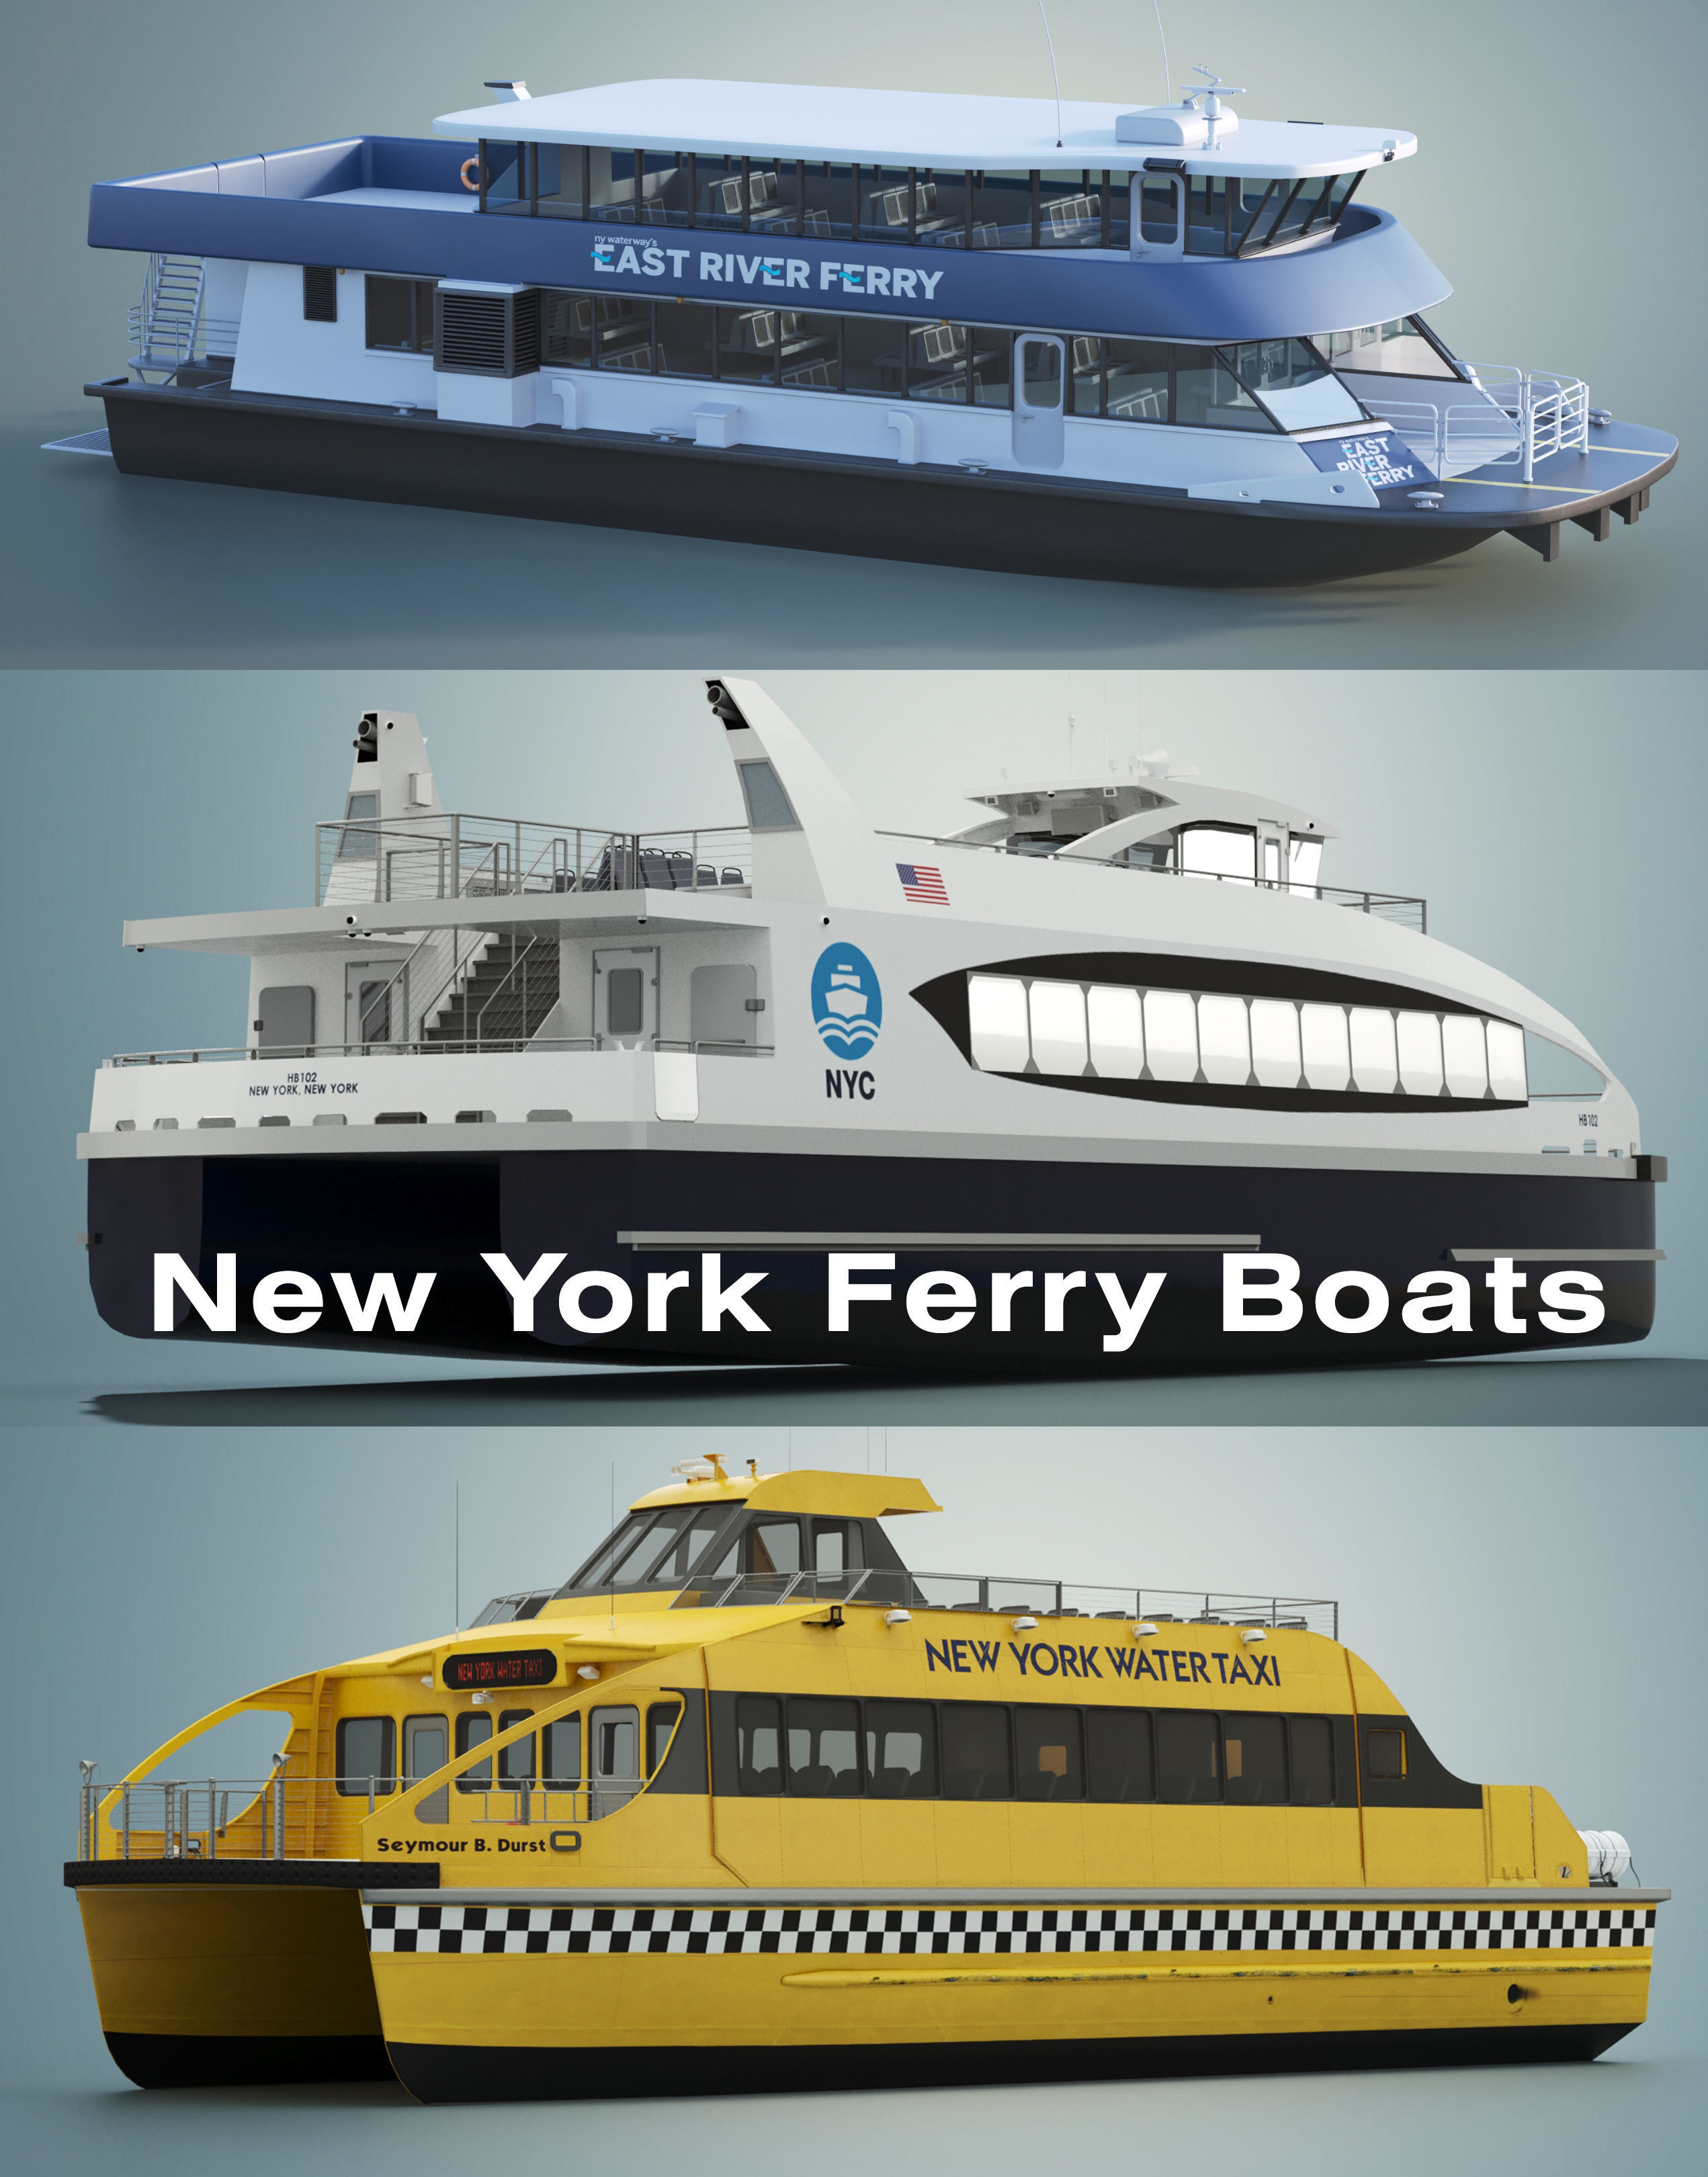 New York Ferry Boats